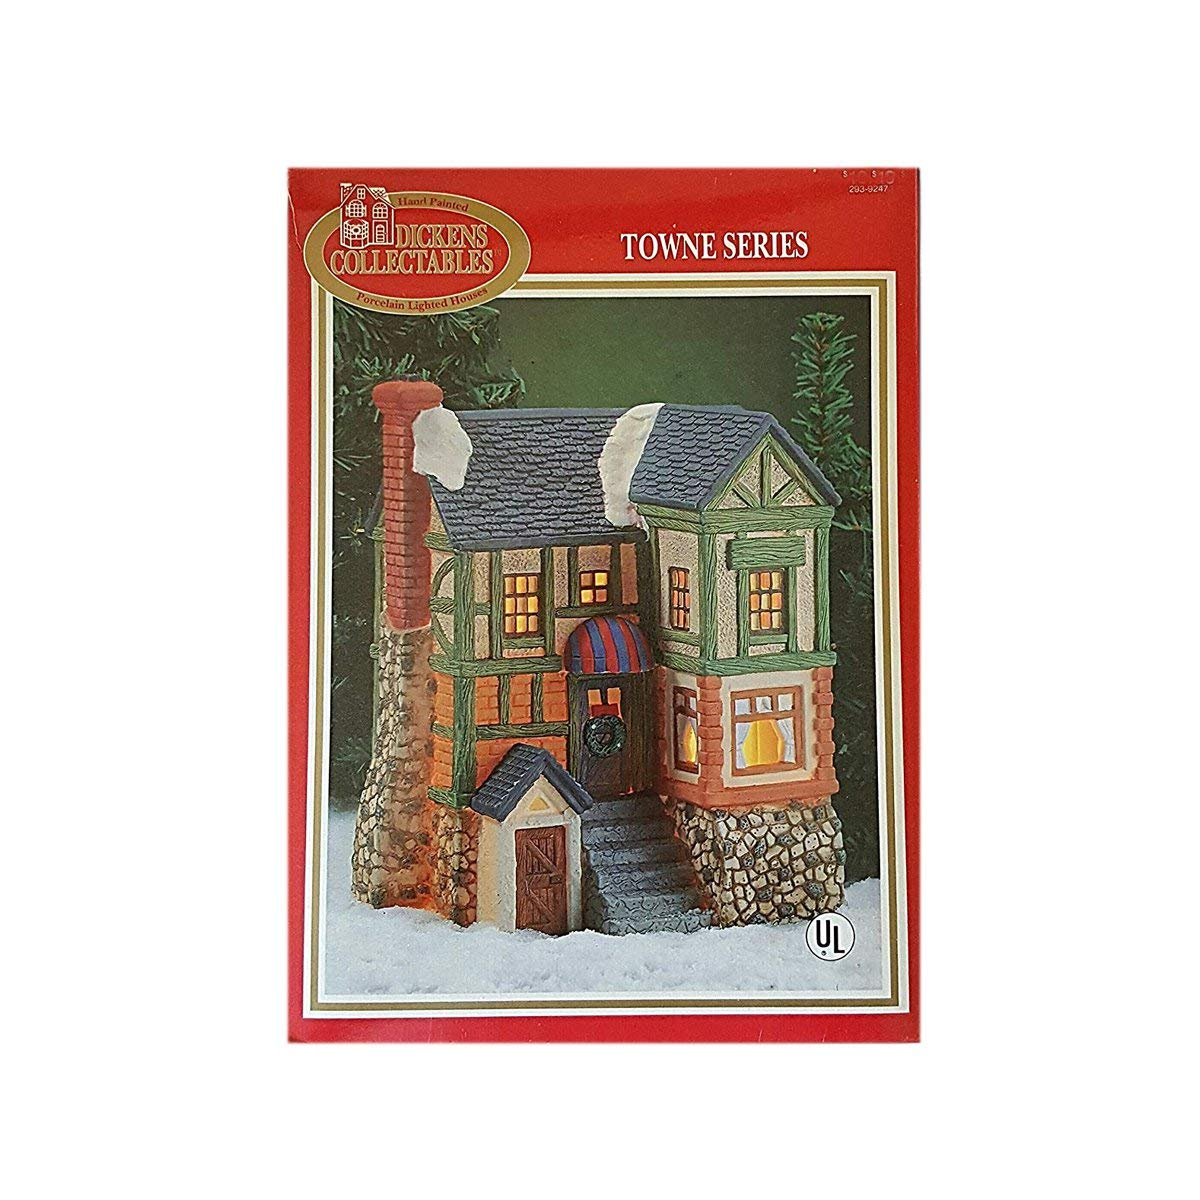 Dickens Collectables Porcelain House Towne Siries 293-9247